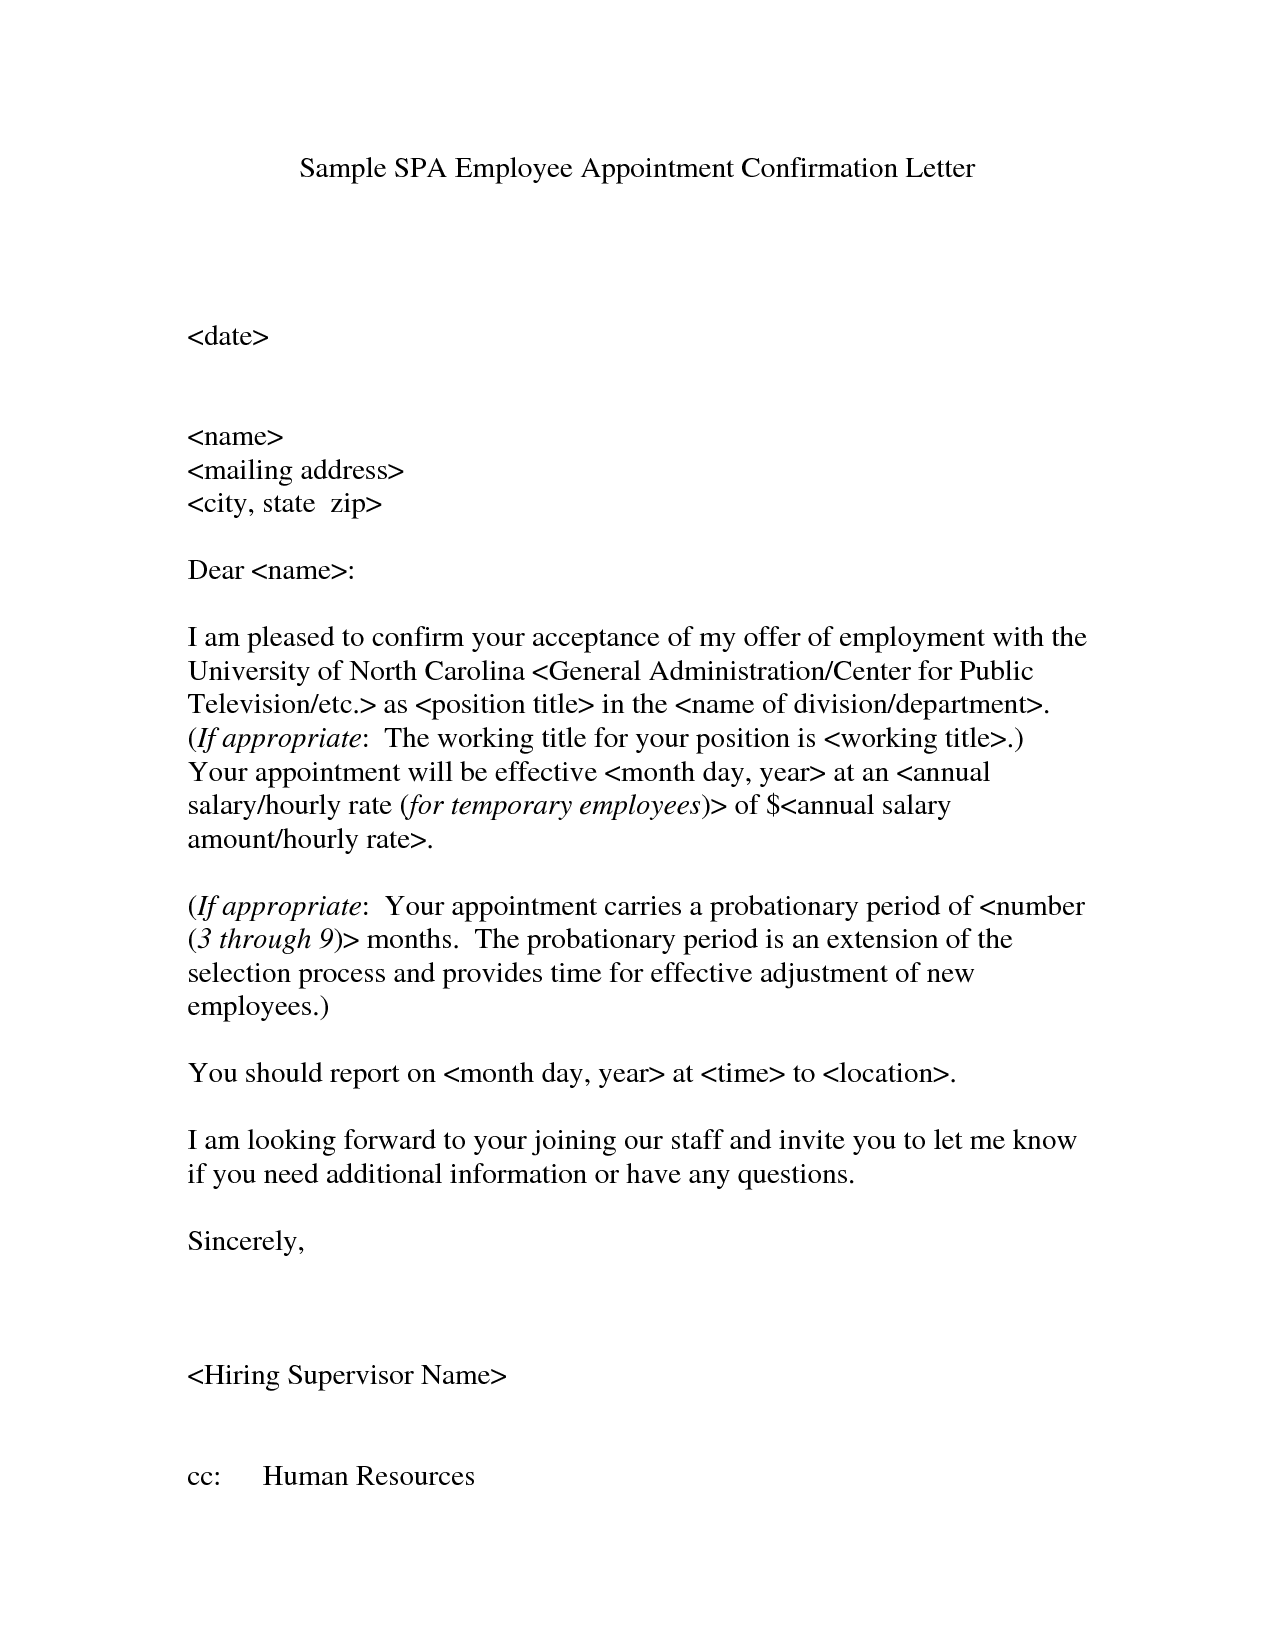 Appointment confirmation letter confirmation of appointment letter appointment confirmation letter confirmation of appointment letter sample helps you how to write a letter of confirmation of appointment altavistaventures Gallery